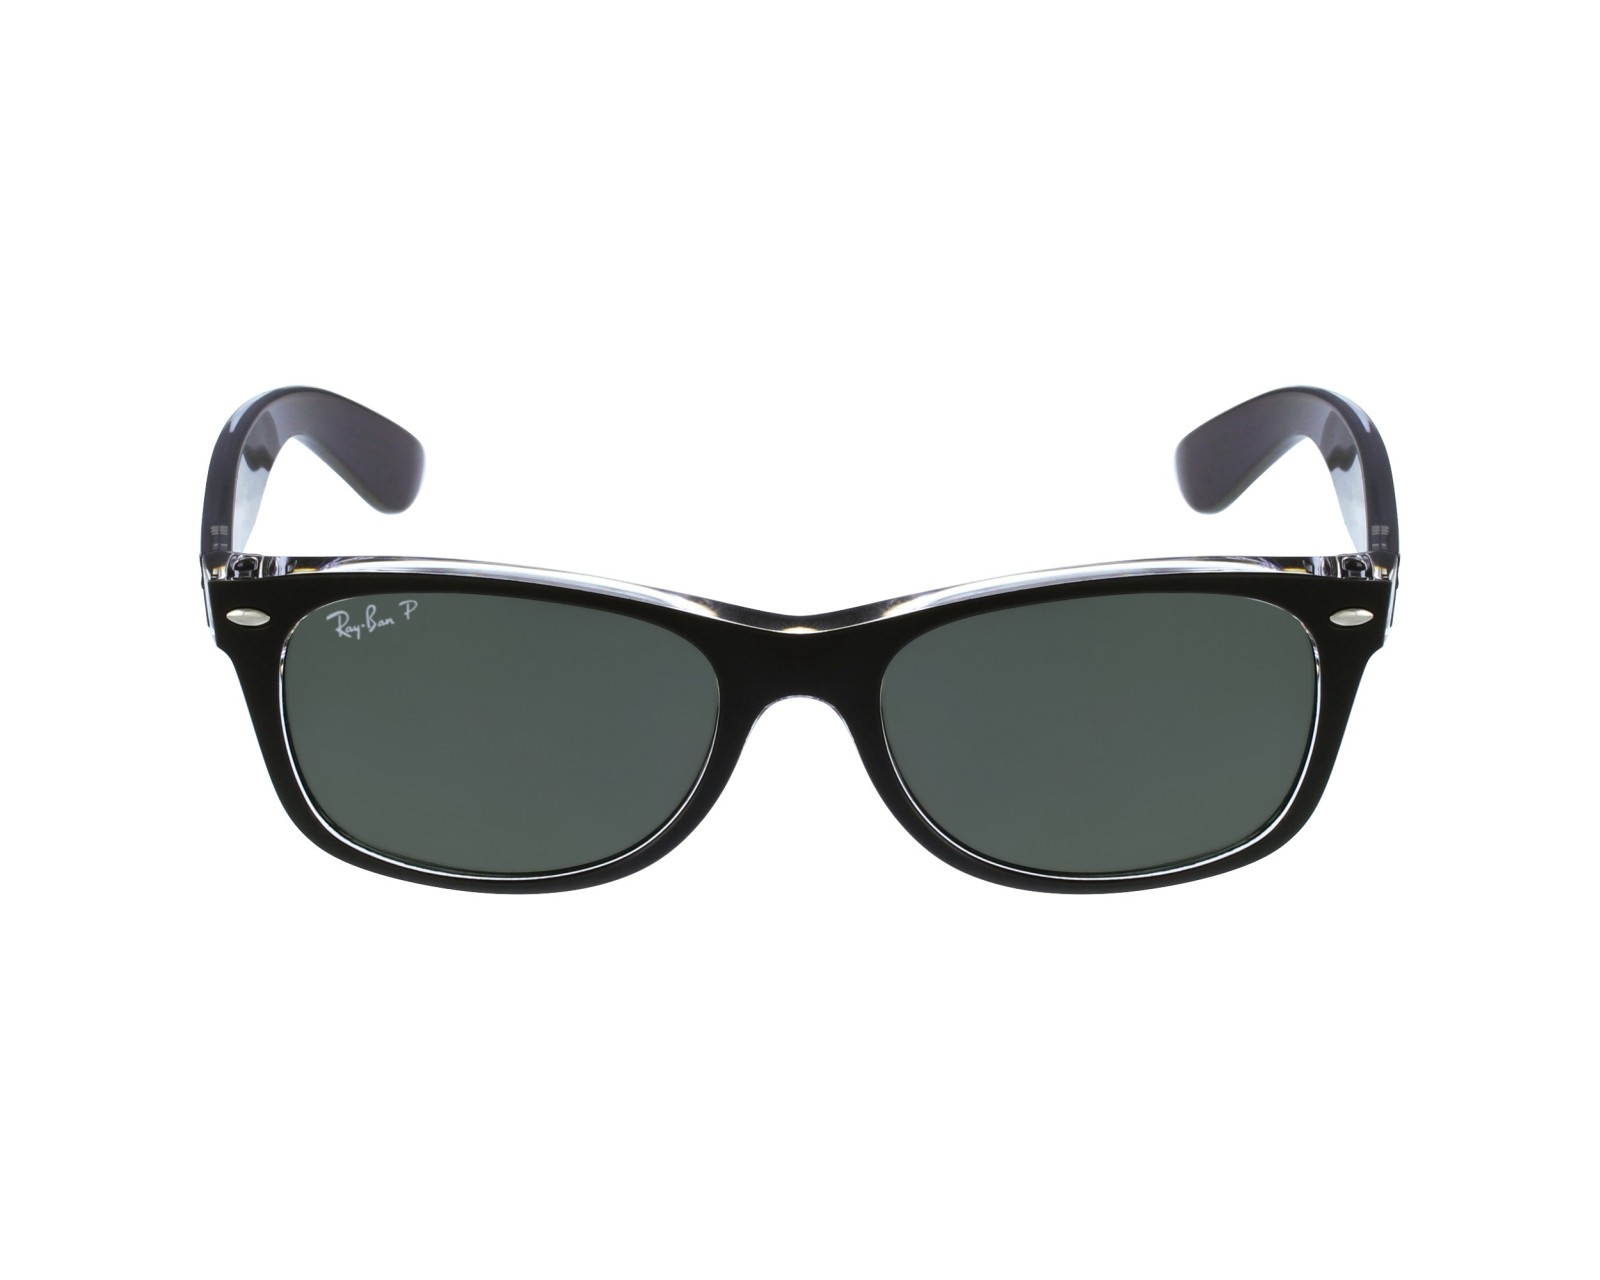 e195d42a811 Sunglasses Ray-Ban RB-2132 605258 52-18 Black profile view